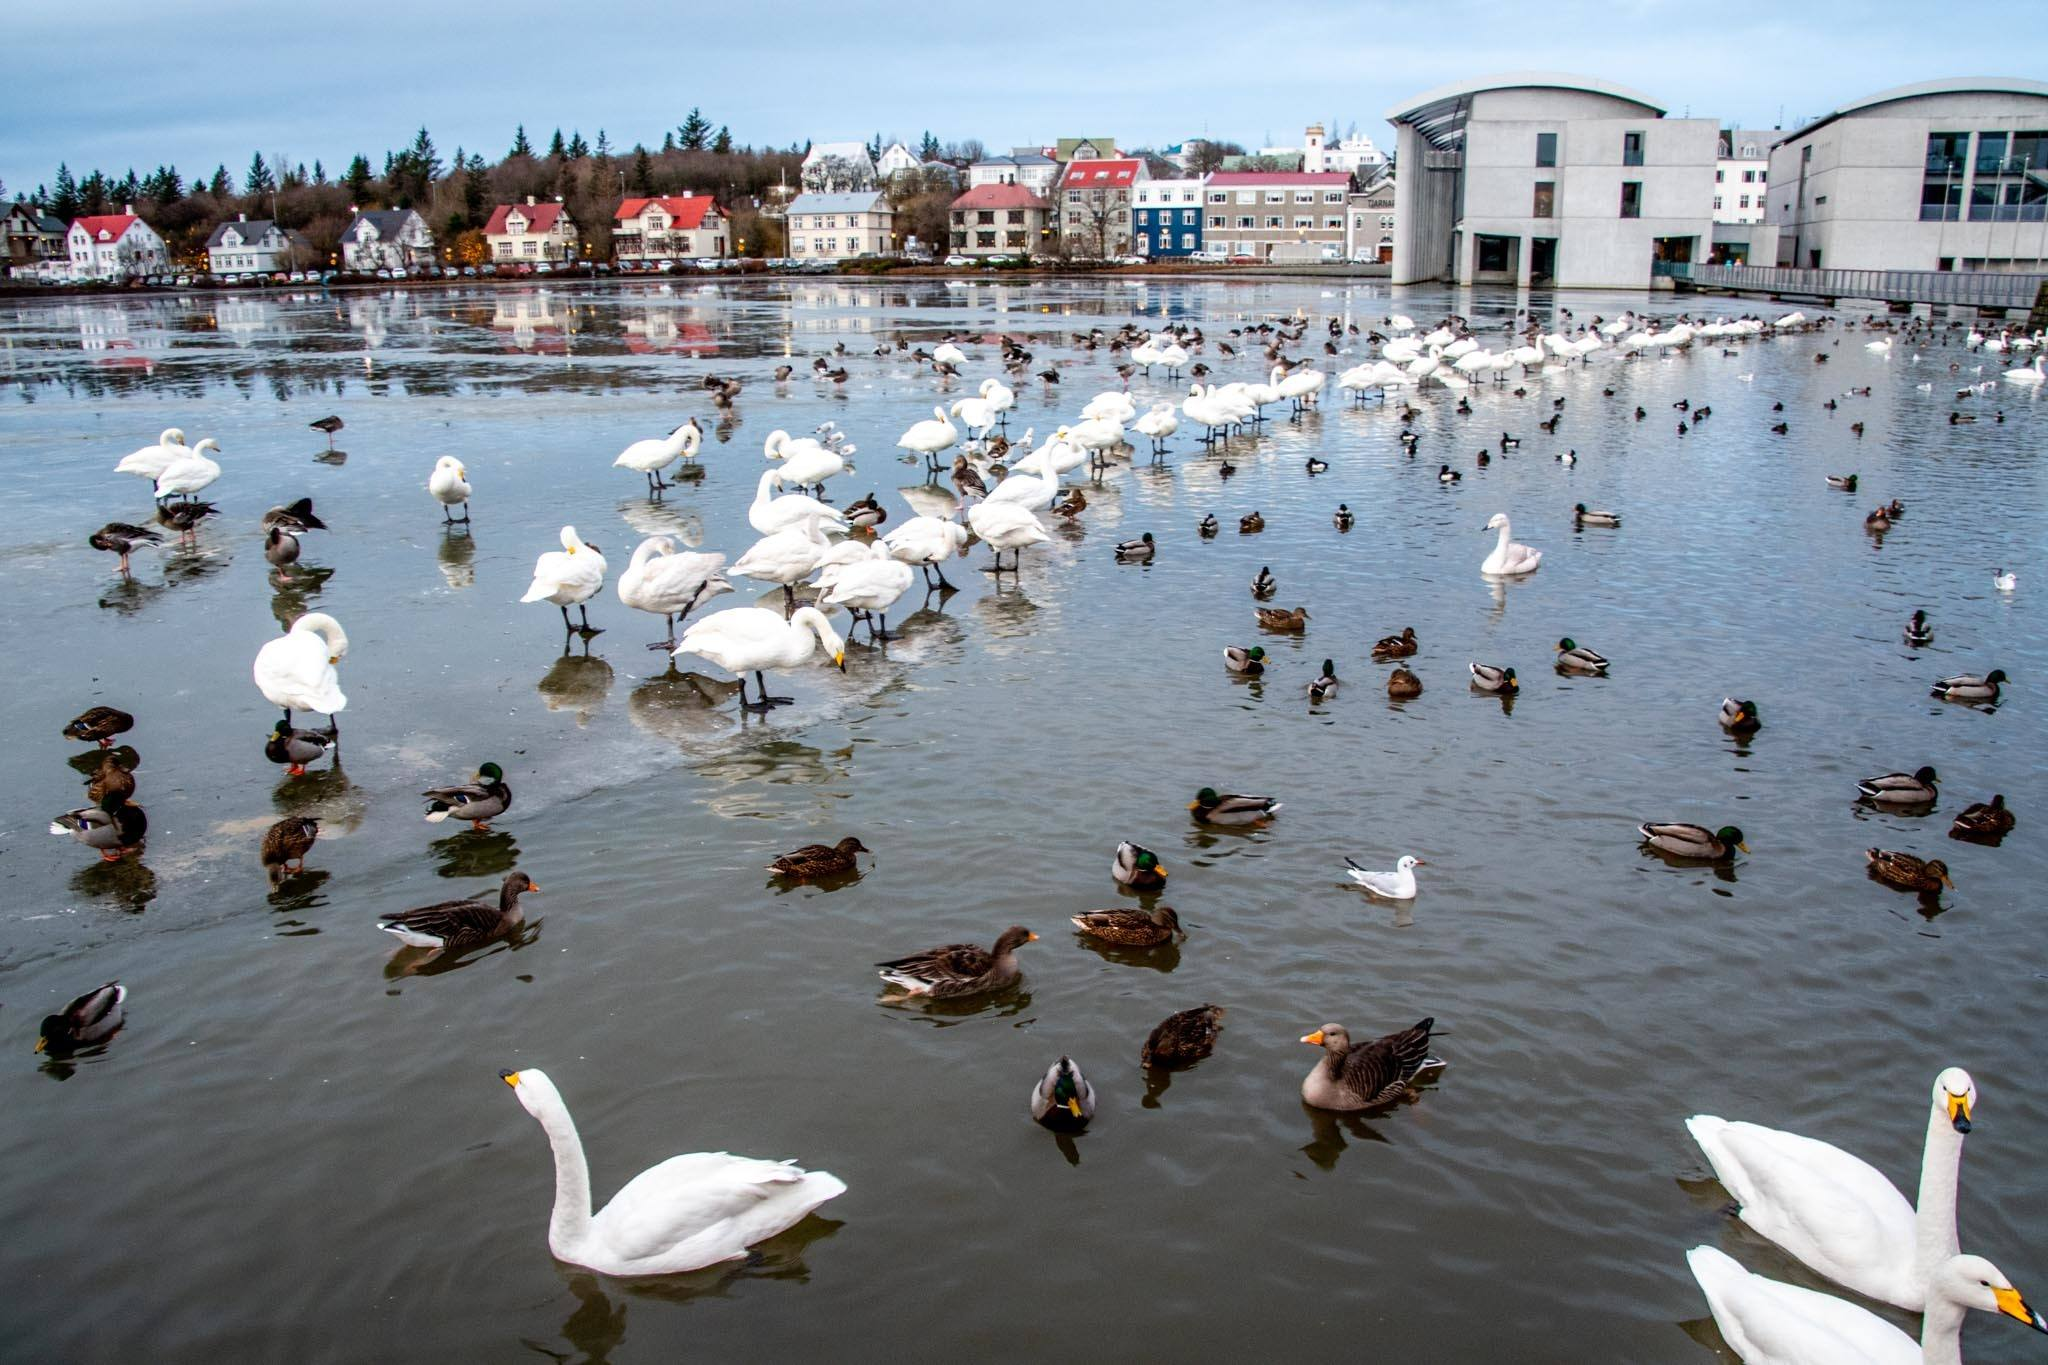 Ducks and swans on the Tjörnin in front of the Reykjavik City Hall